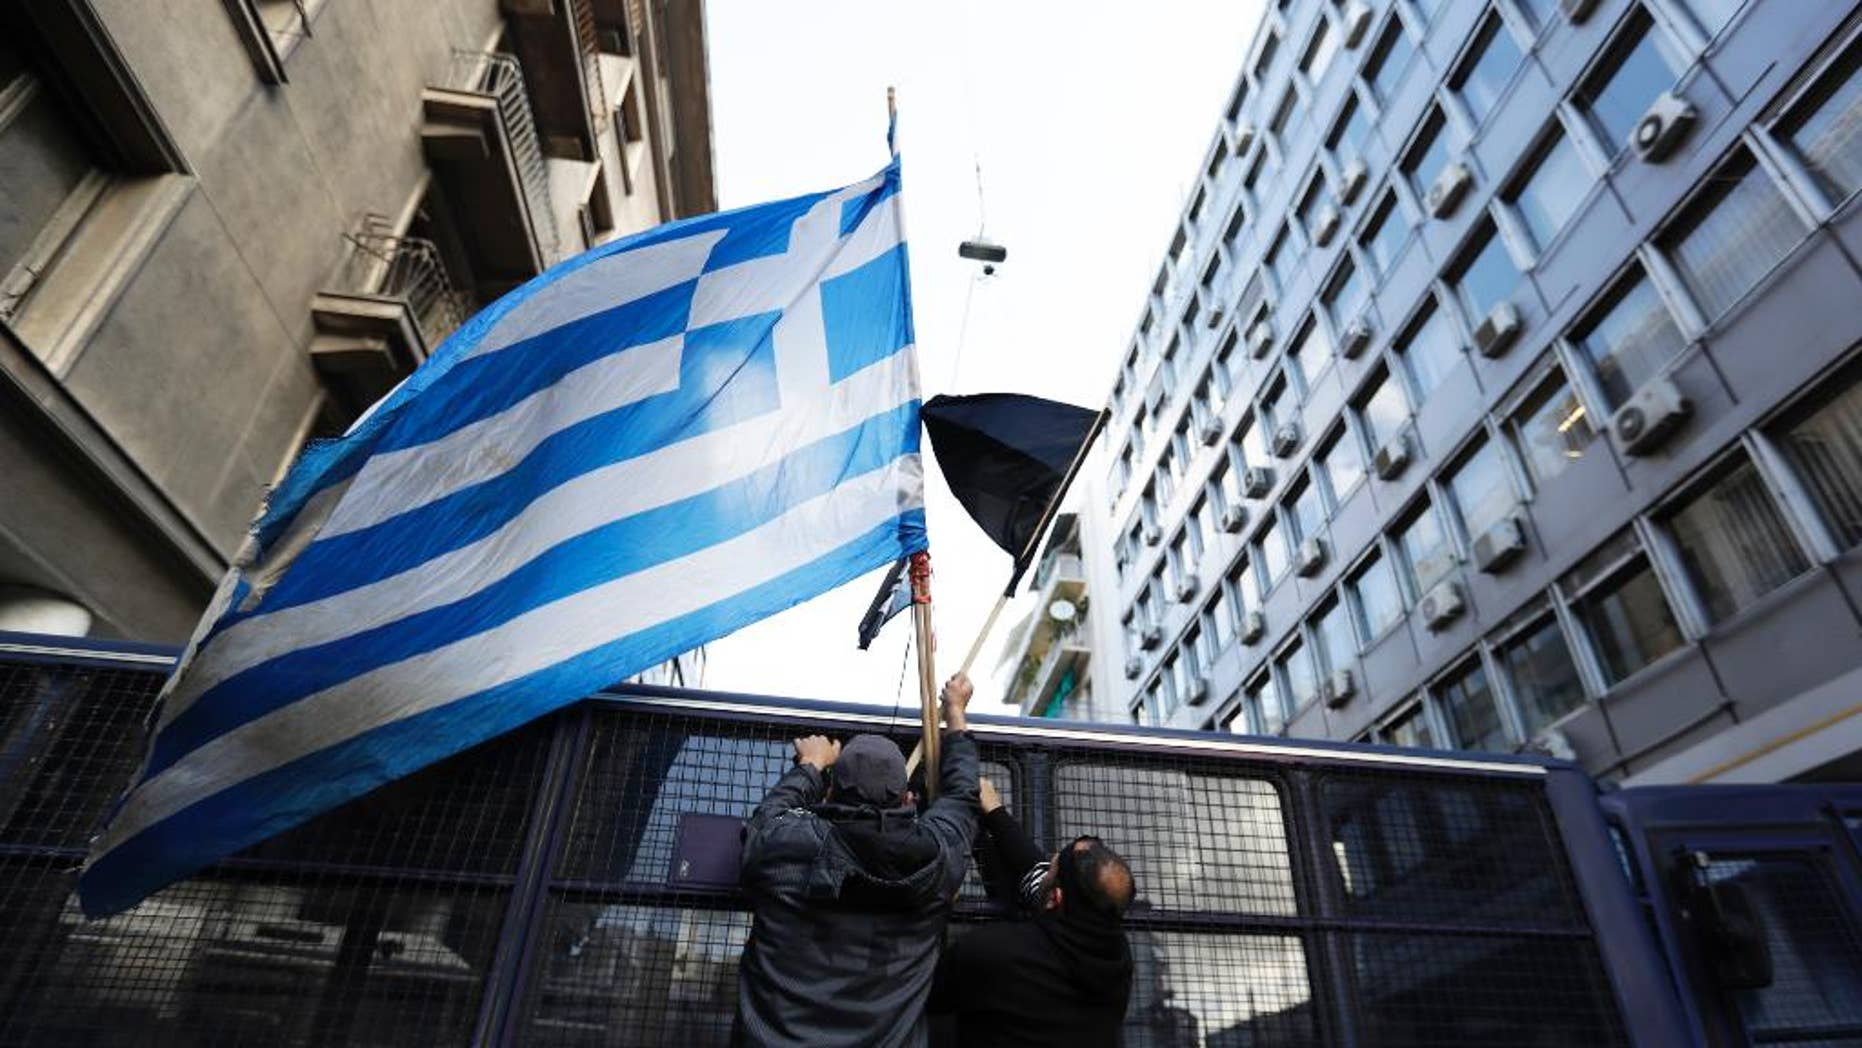 Protesting farmers place a greek flag on a police vehicle outside the Greek Agriculture Ministry, in Athens, Wednesday, March 8, 2017. Several hundred farmers from the island of Crete are protesting against government tax reforms tied to the country's international bailout. (AP Photo/Thanassis Stavrakis)